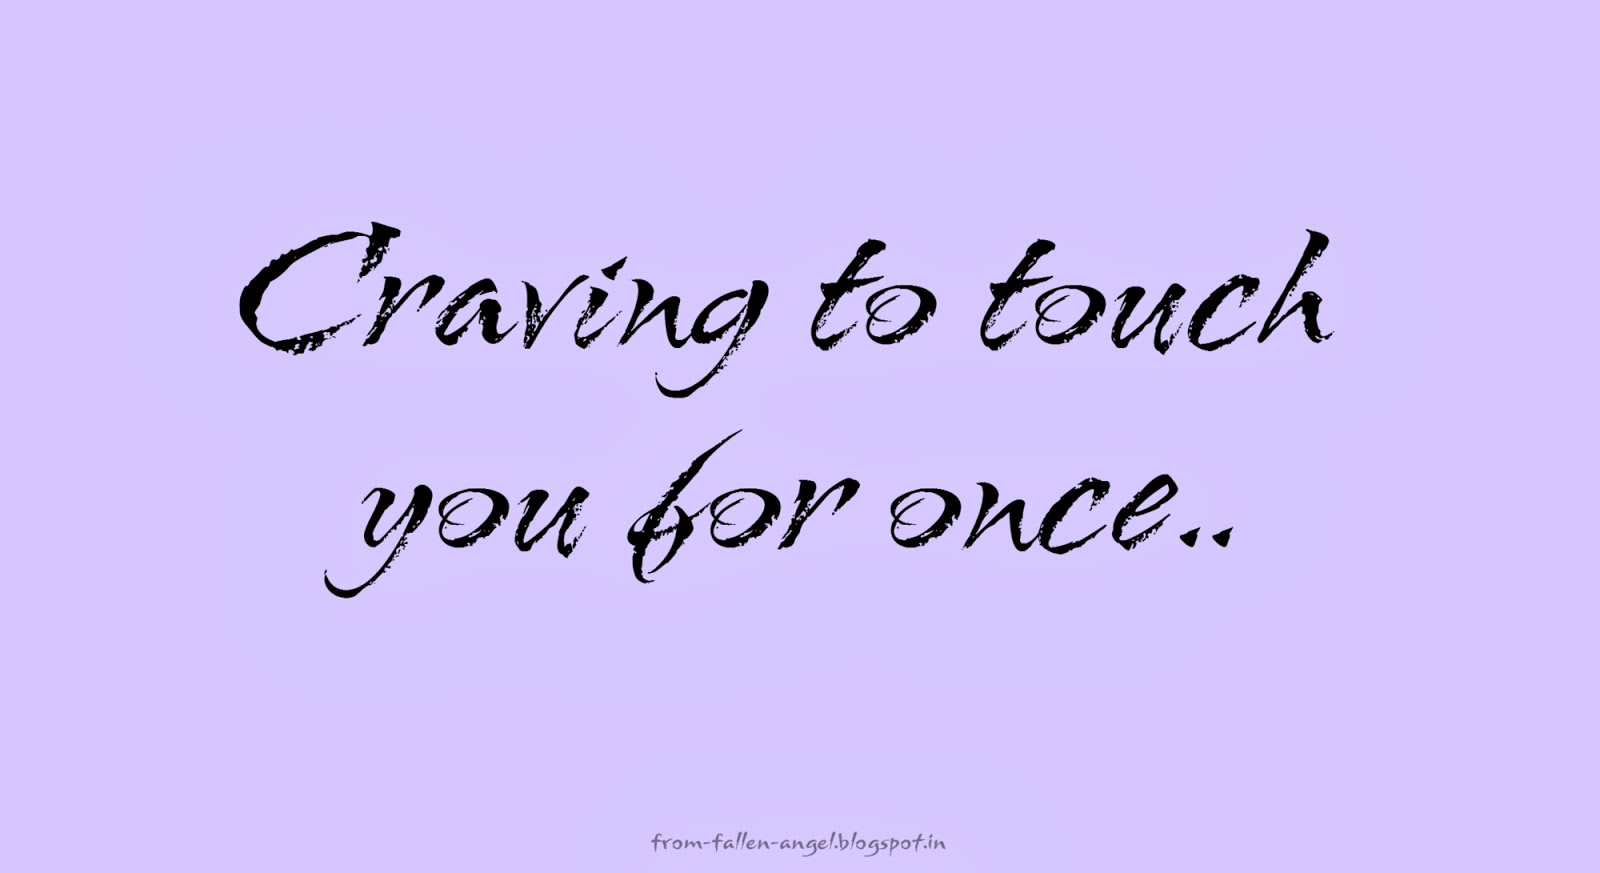 Craving to touch you for once..